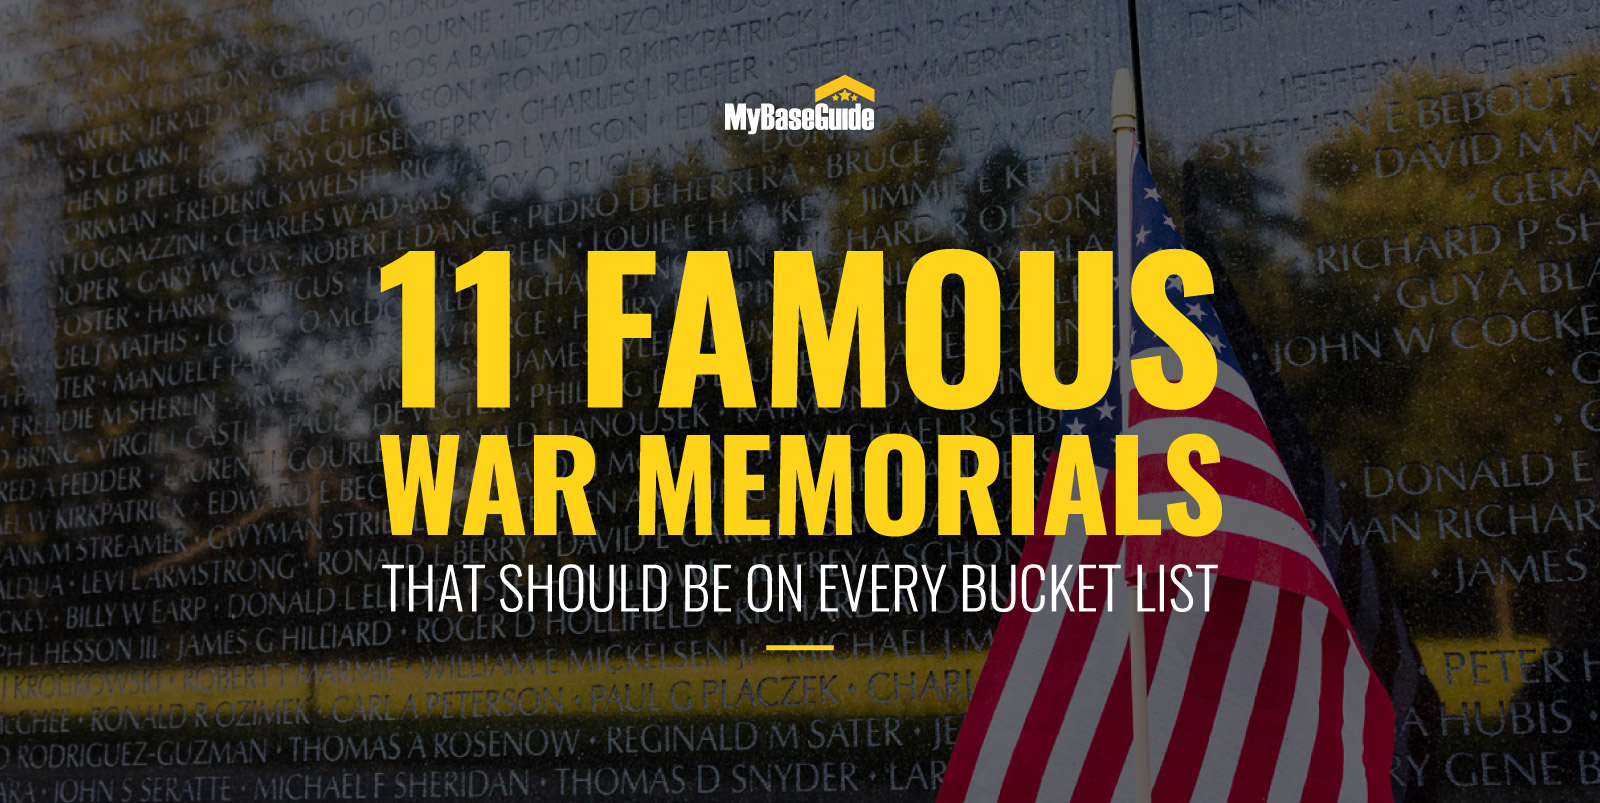 11 Famous War Memorials That Should Be on Every Bucket List